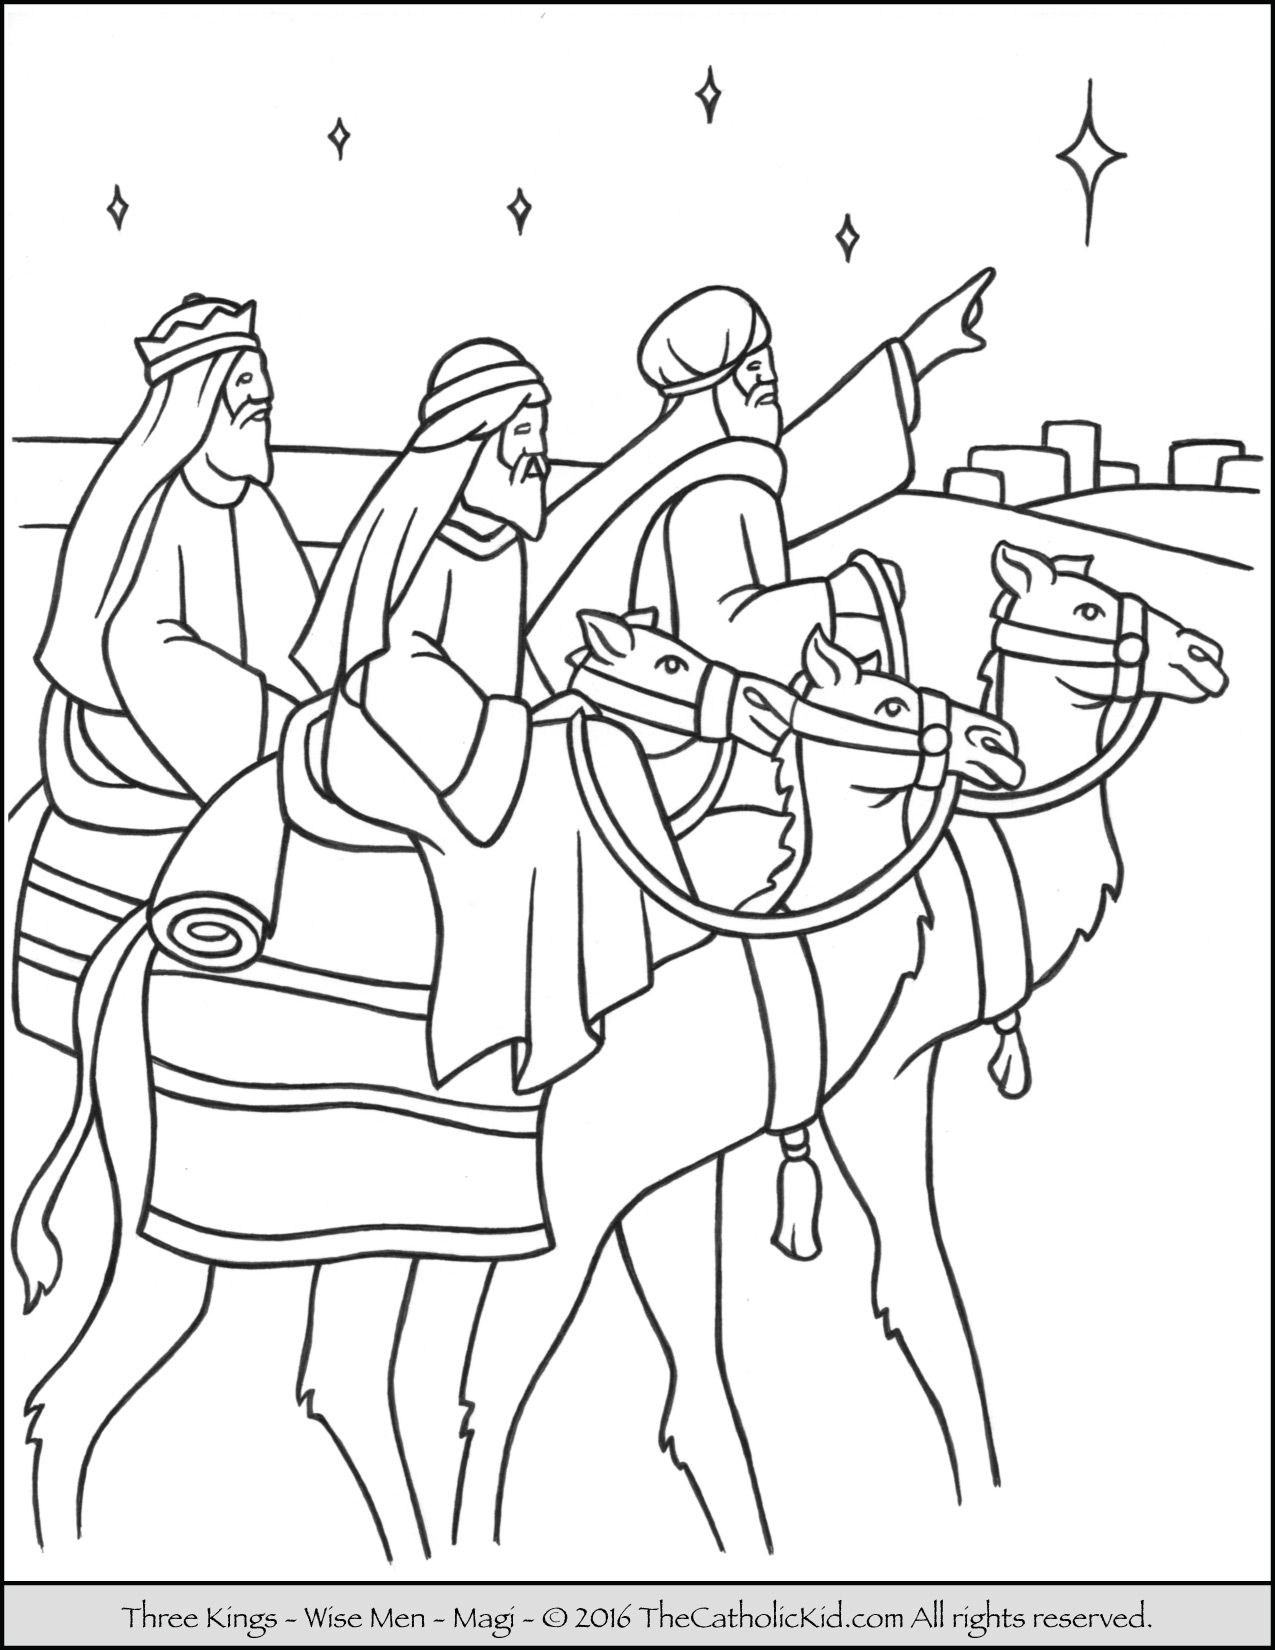 free christmas coloring pages manger shepherds wiseman | Three Kings Magi Coloring Page | Advent & Christmas ...